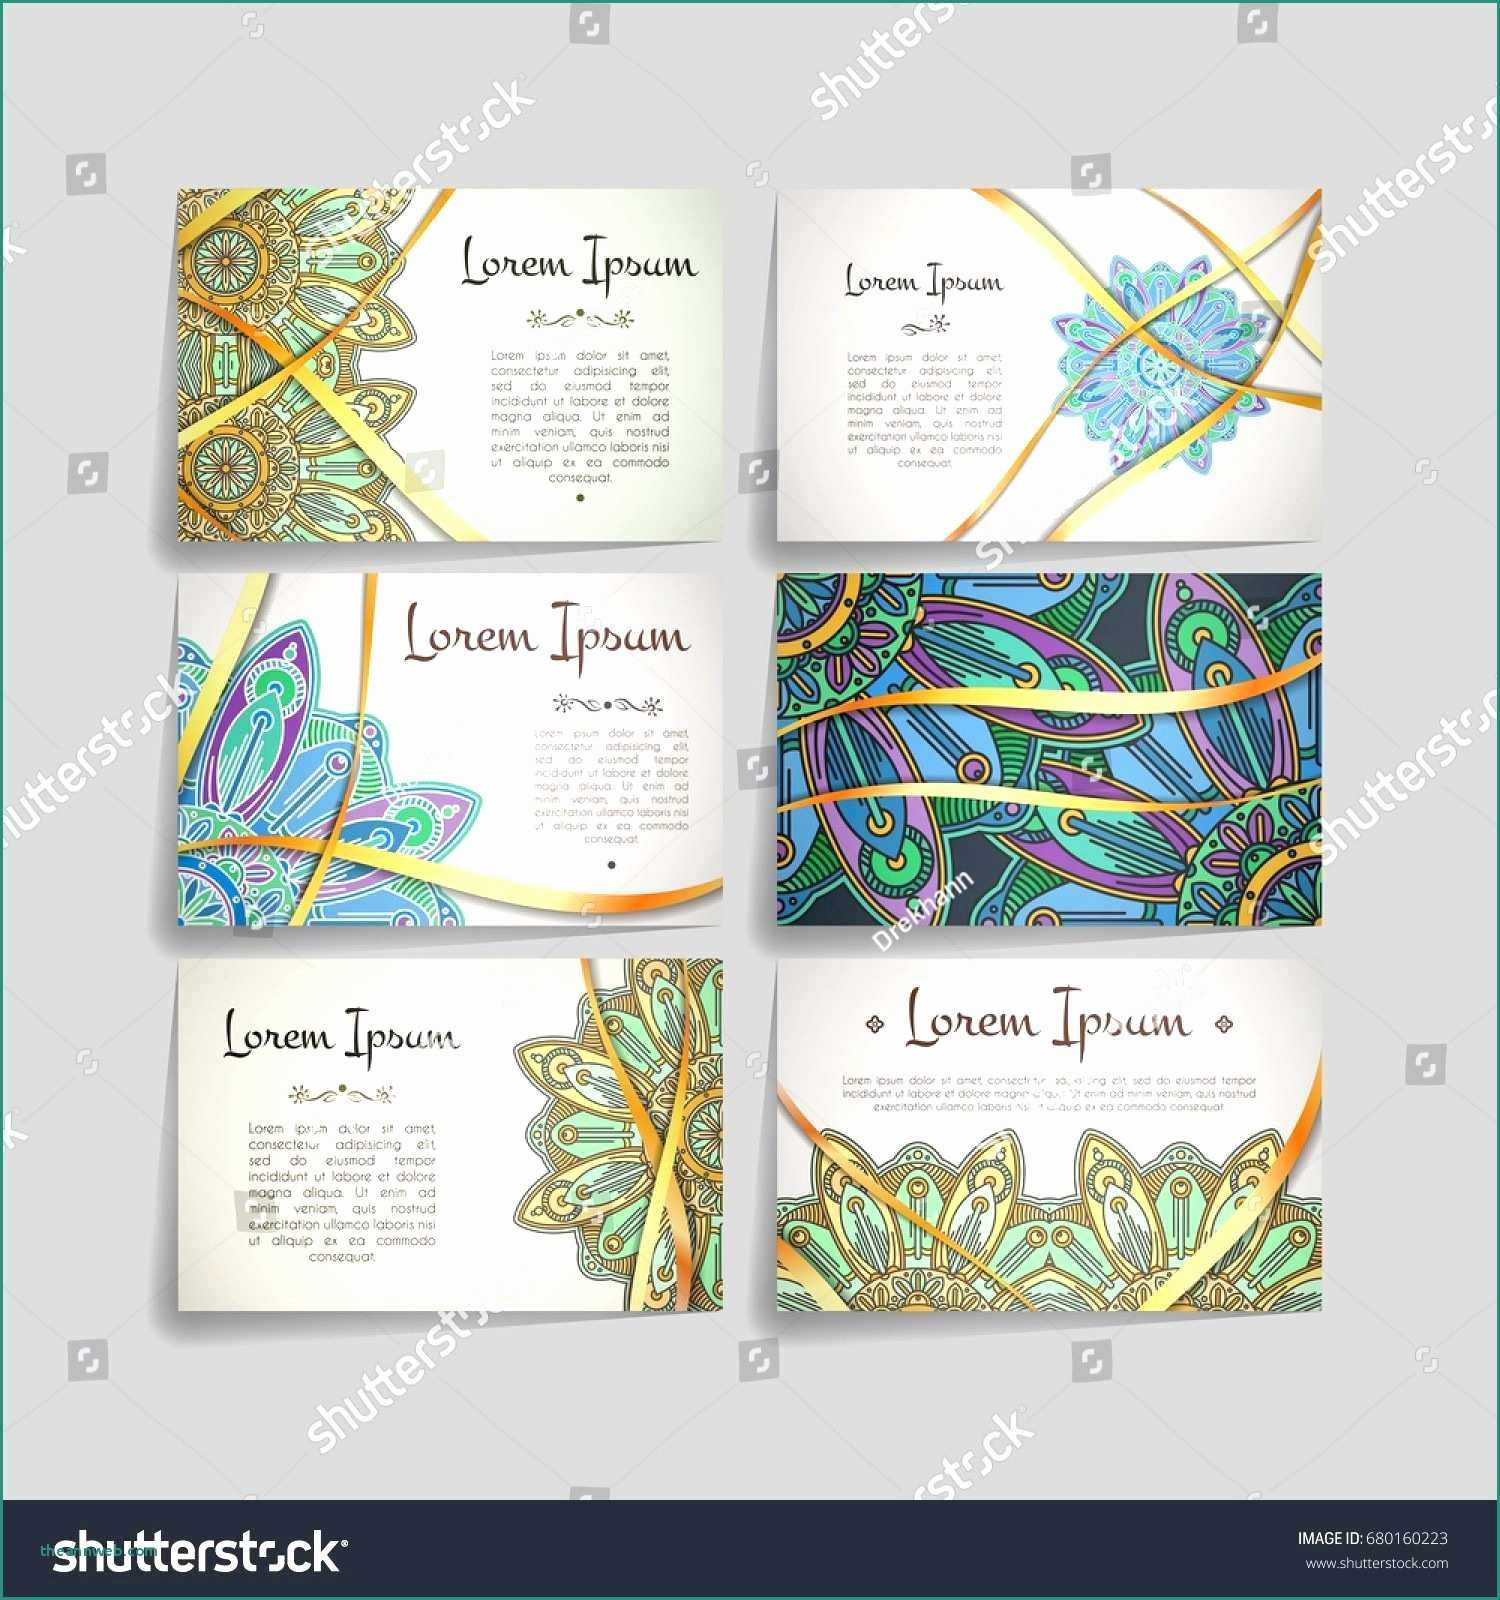 Quarter Fold Greeting Card Template - Atlantaauctionco intended for Quarter Fold Greeting Card Template